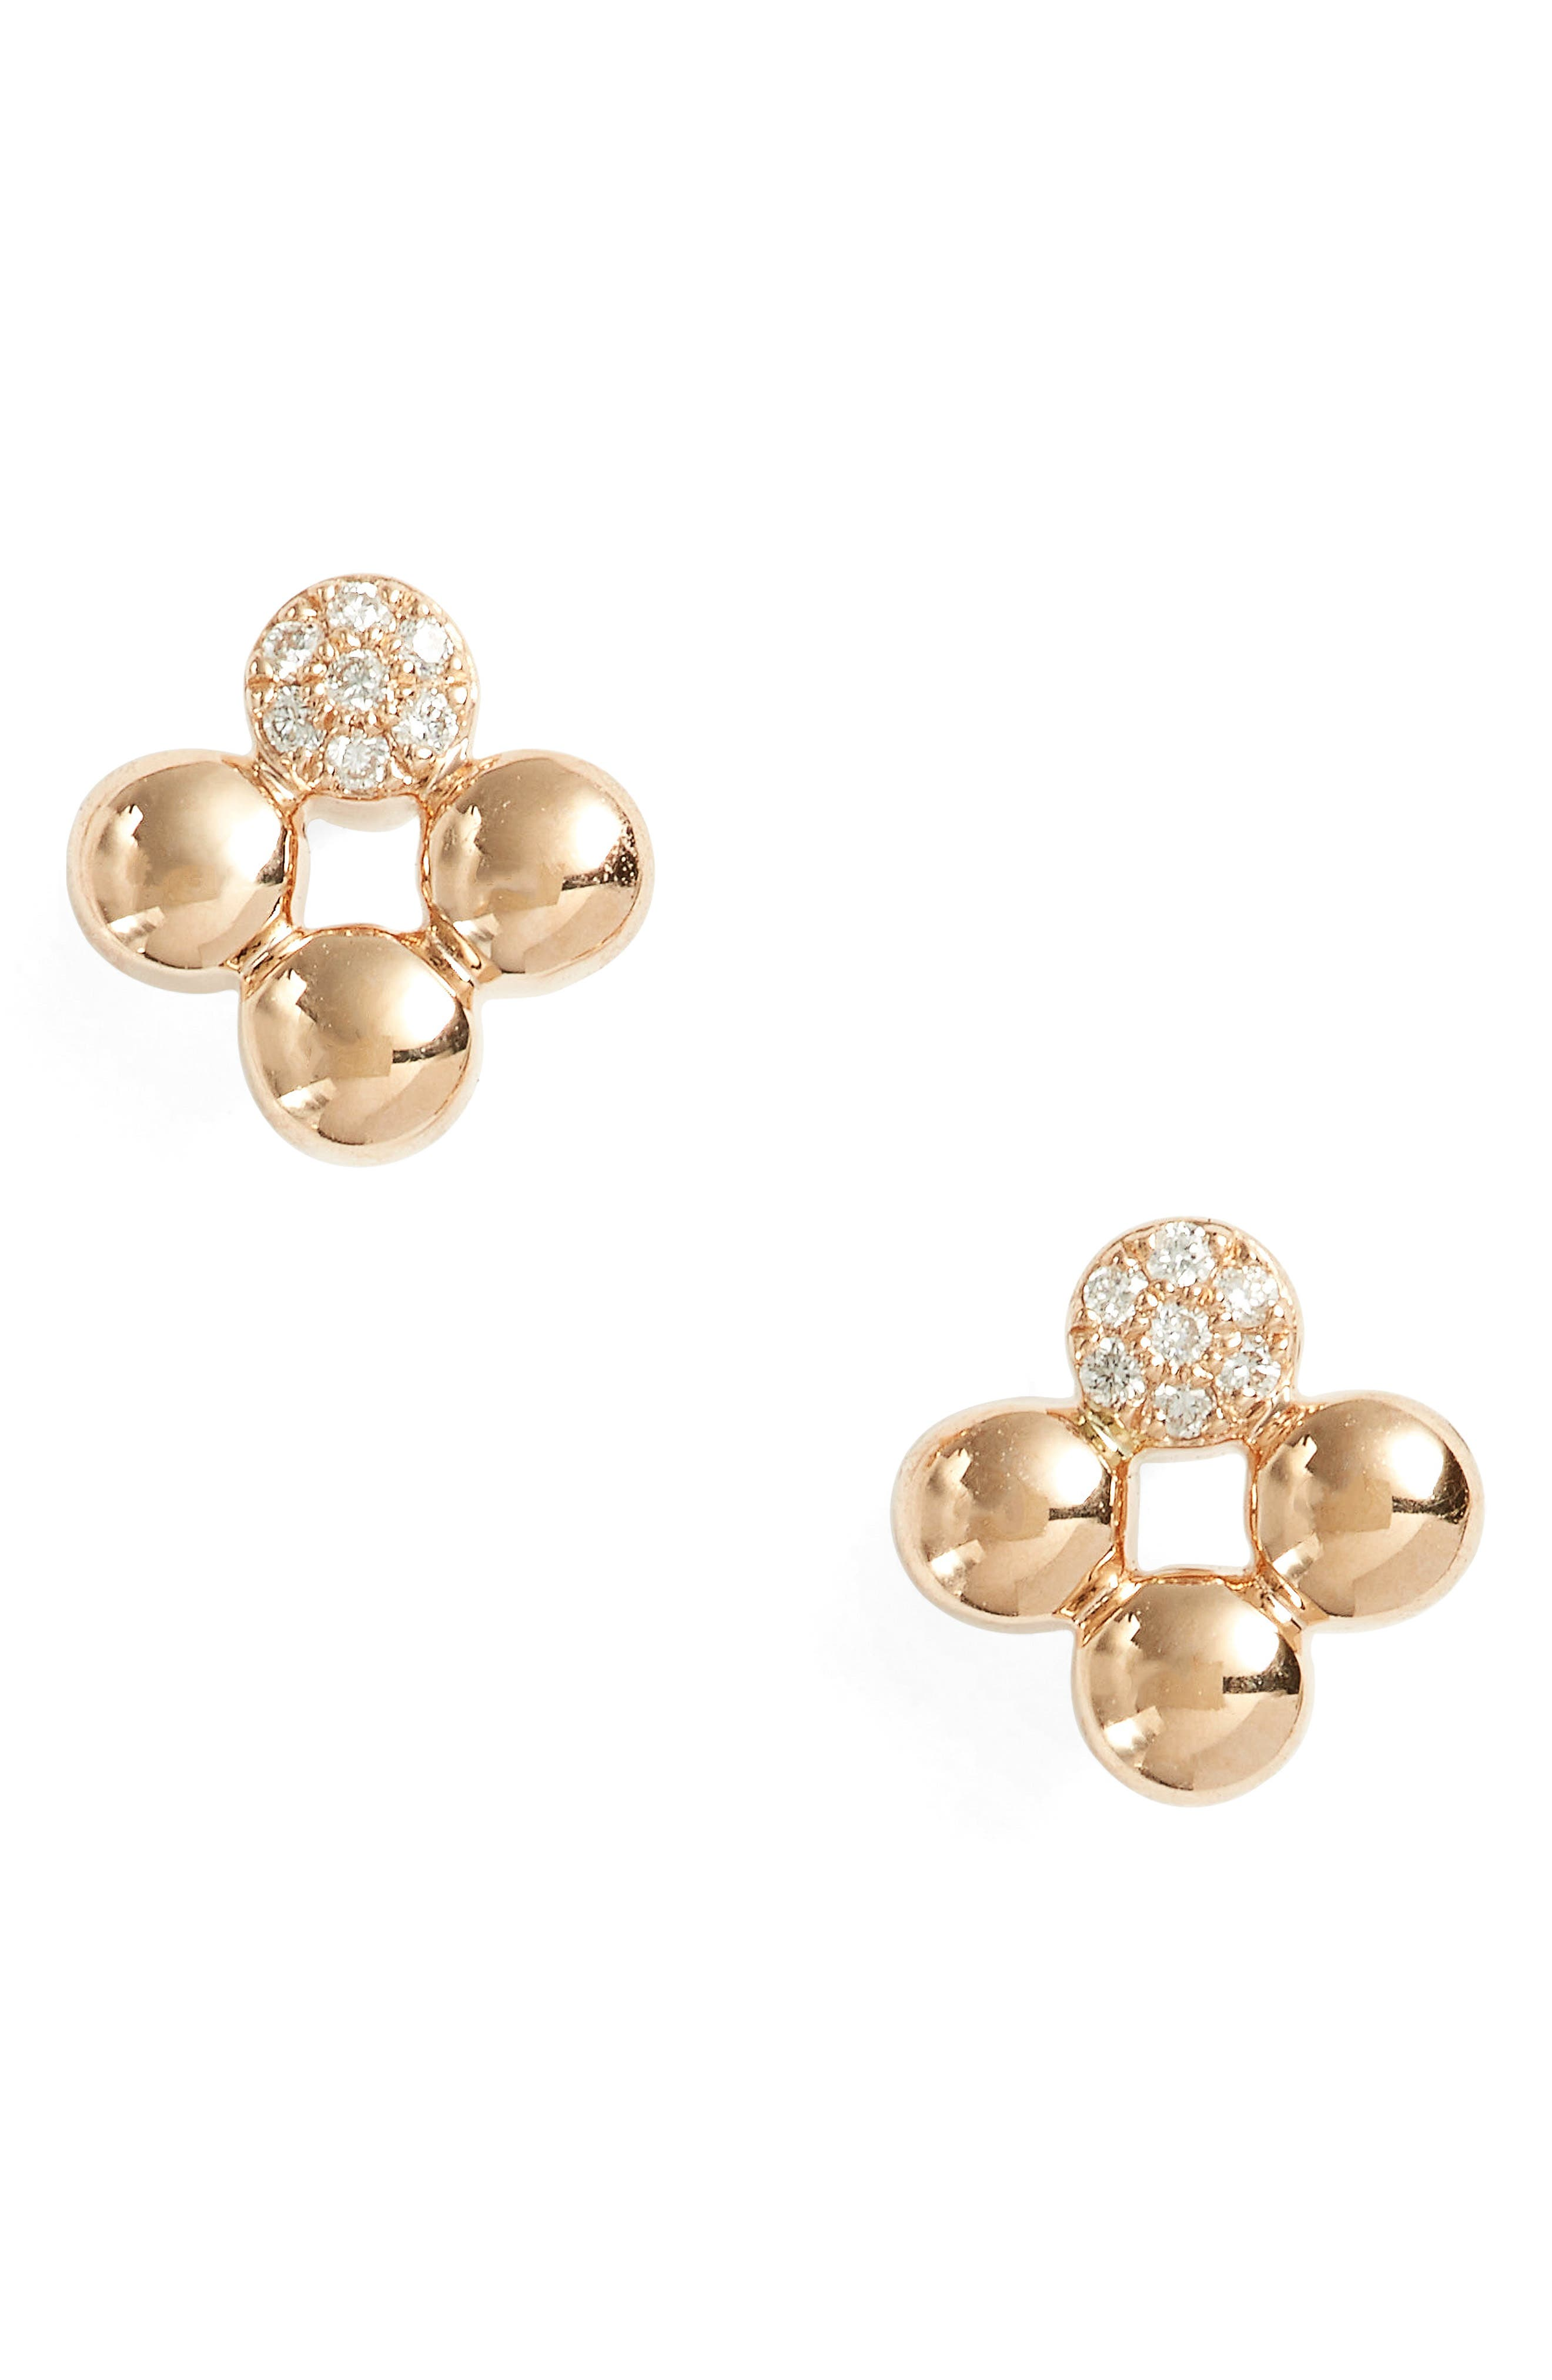 Dana Rebecca Designs Poppy Rae Clover Diamond Stud Earrings